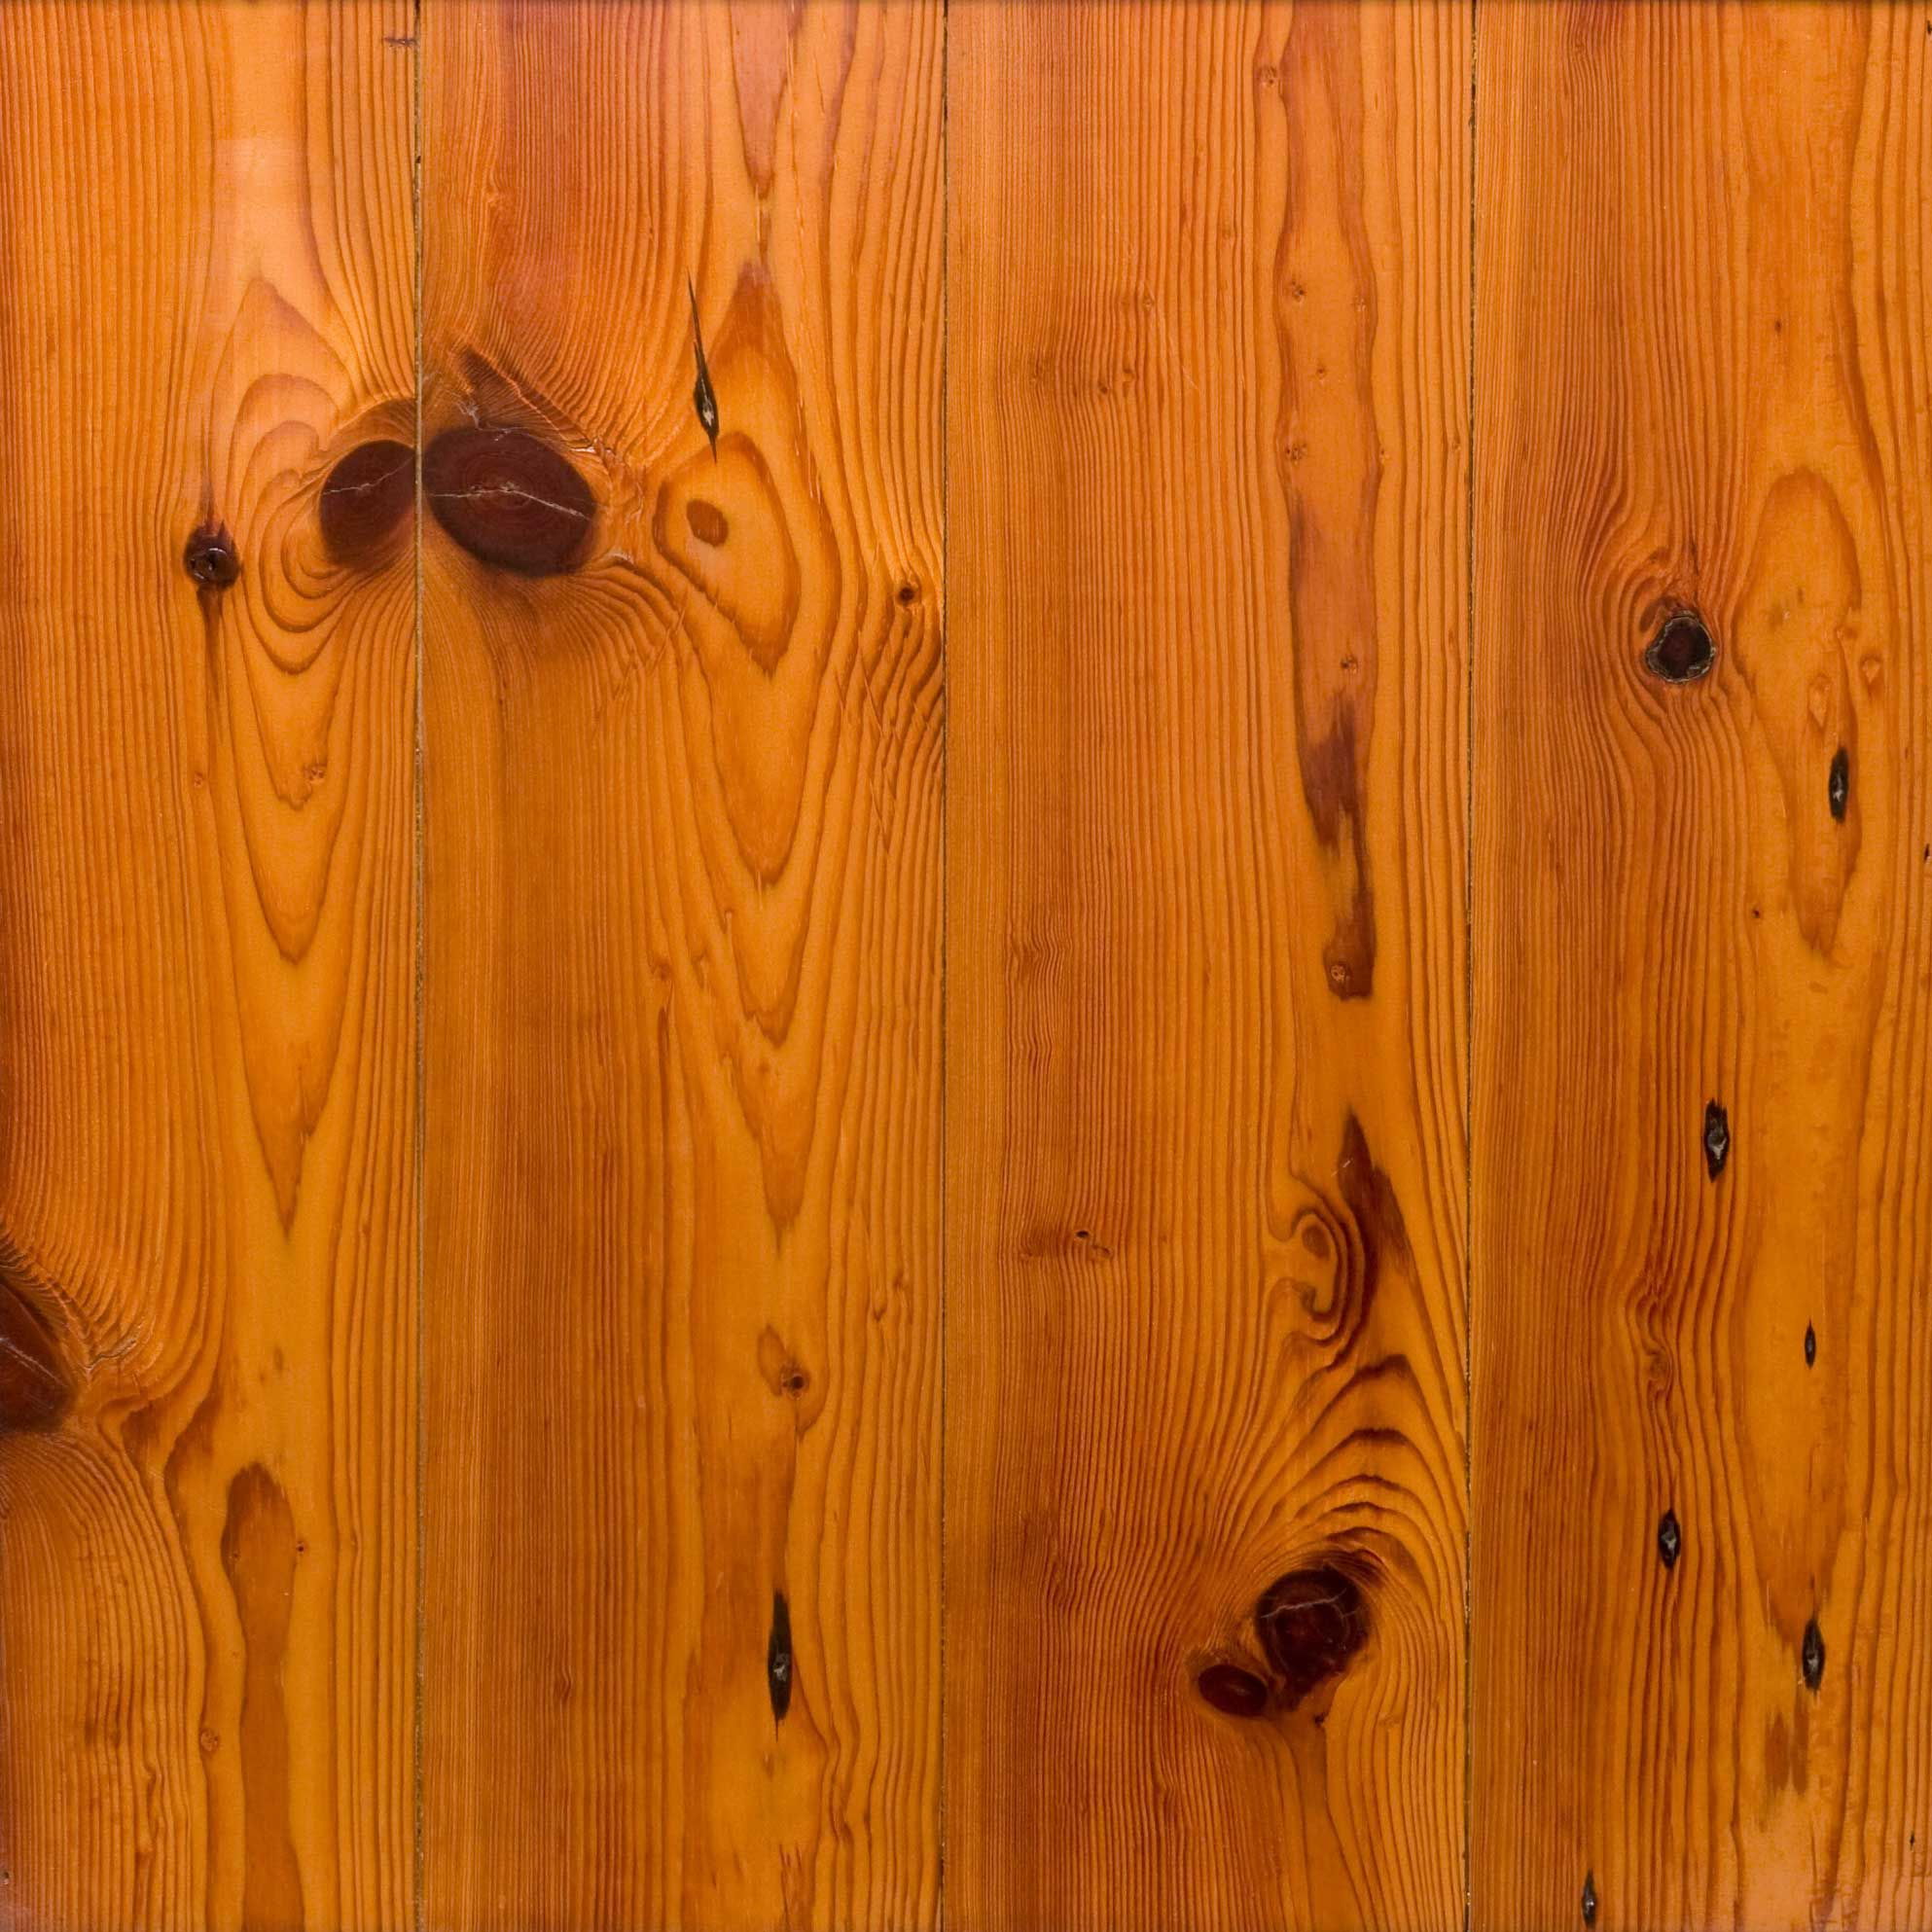 Shipping This Order Of 1x4 Beetle Kill Blue Stain Pine Paneling To A Customer In Michigan Today Wood Reclaimed Wood Floors Staining Wood